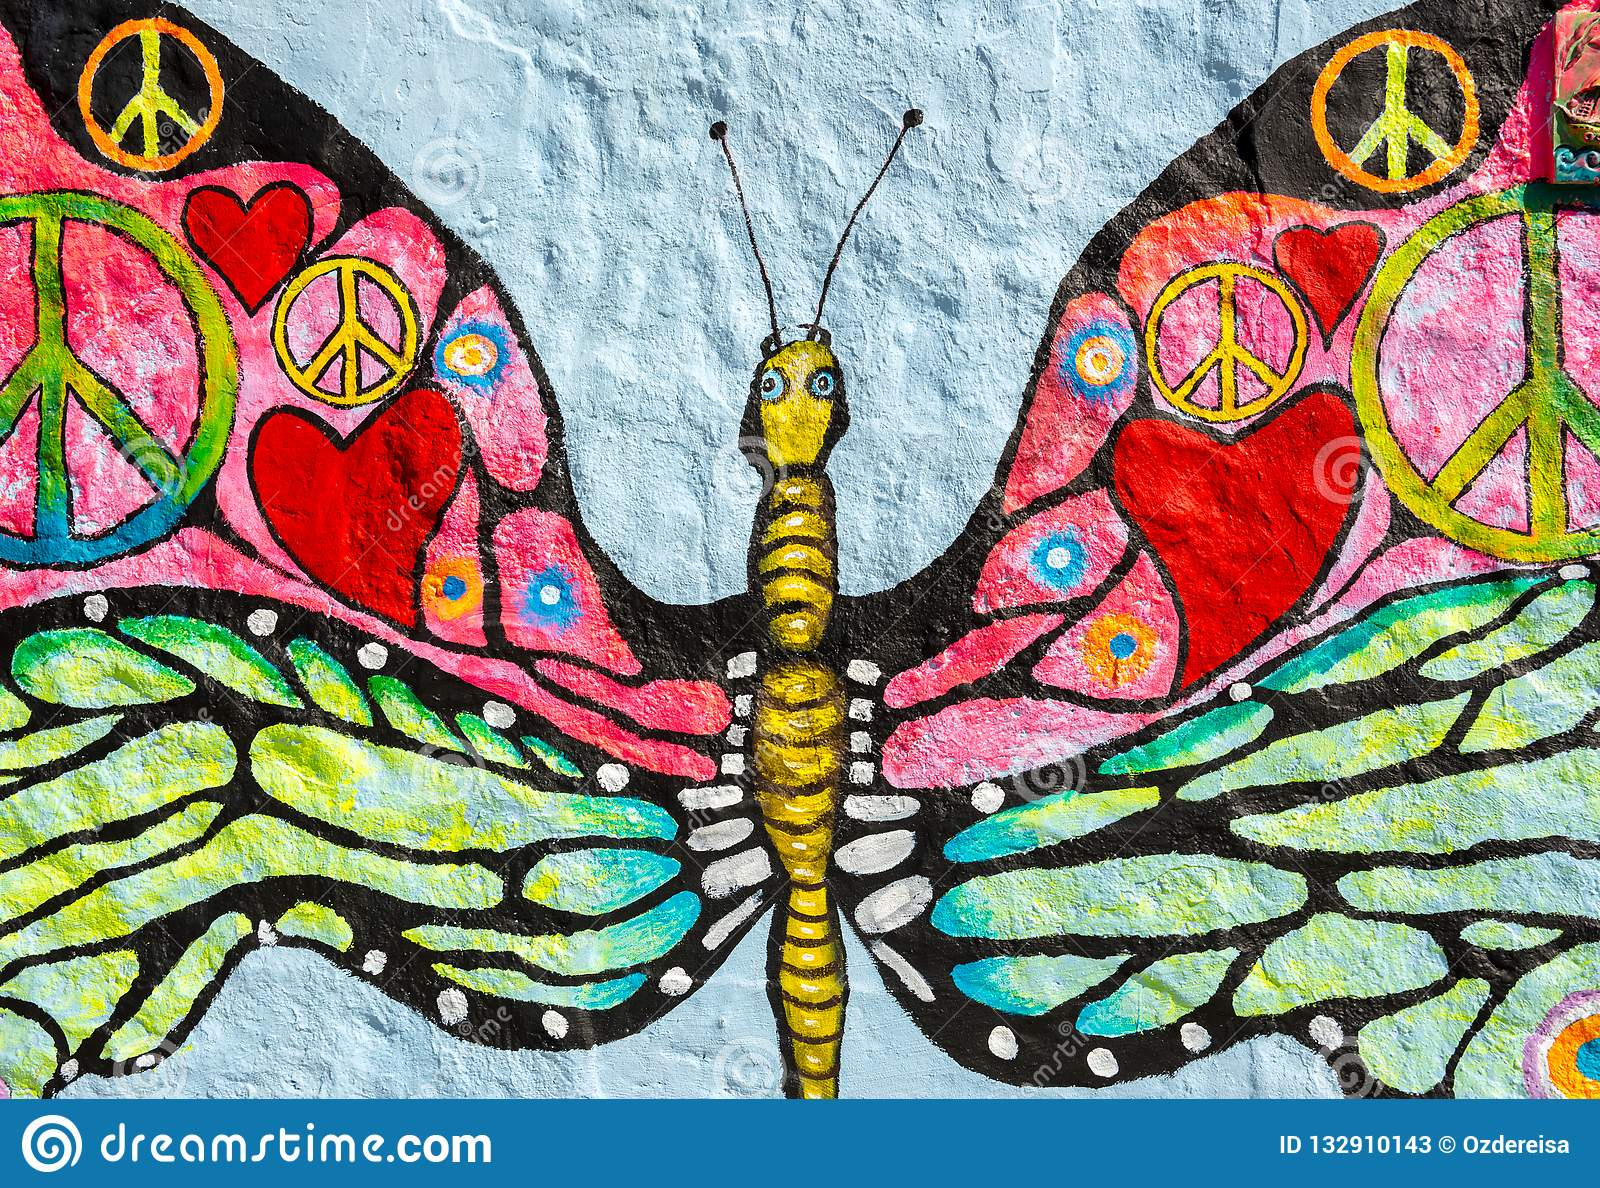 peace concepts painted over butterfly painting on grunge wall